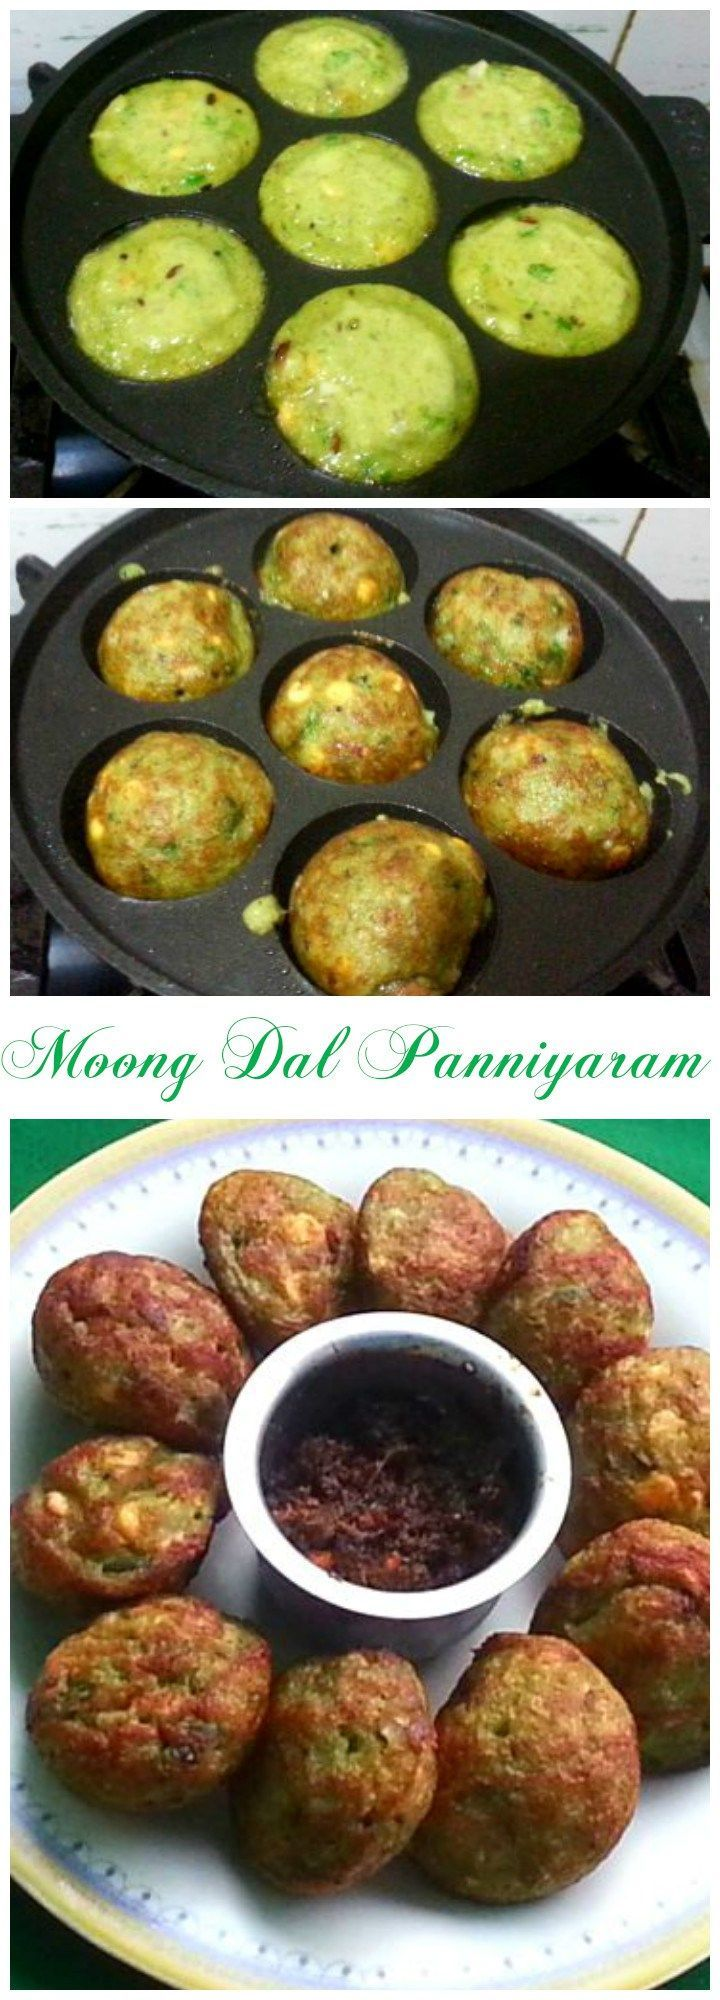 Moon Dal Paniyaram is prepared with a batter made with soaked whole Green Gram (Moong) mixed with onions, Green Chillies and is cooked on a Paniyaram Pan.